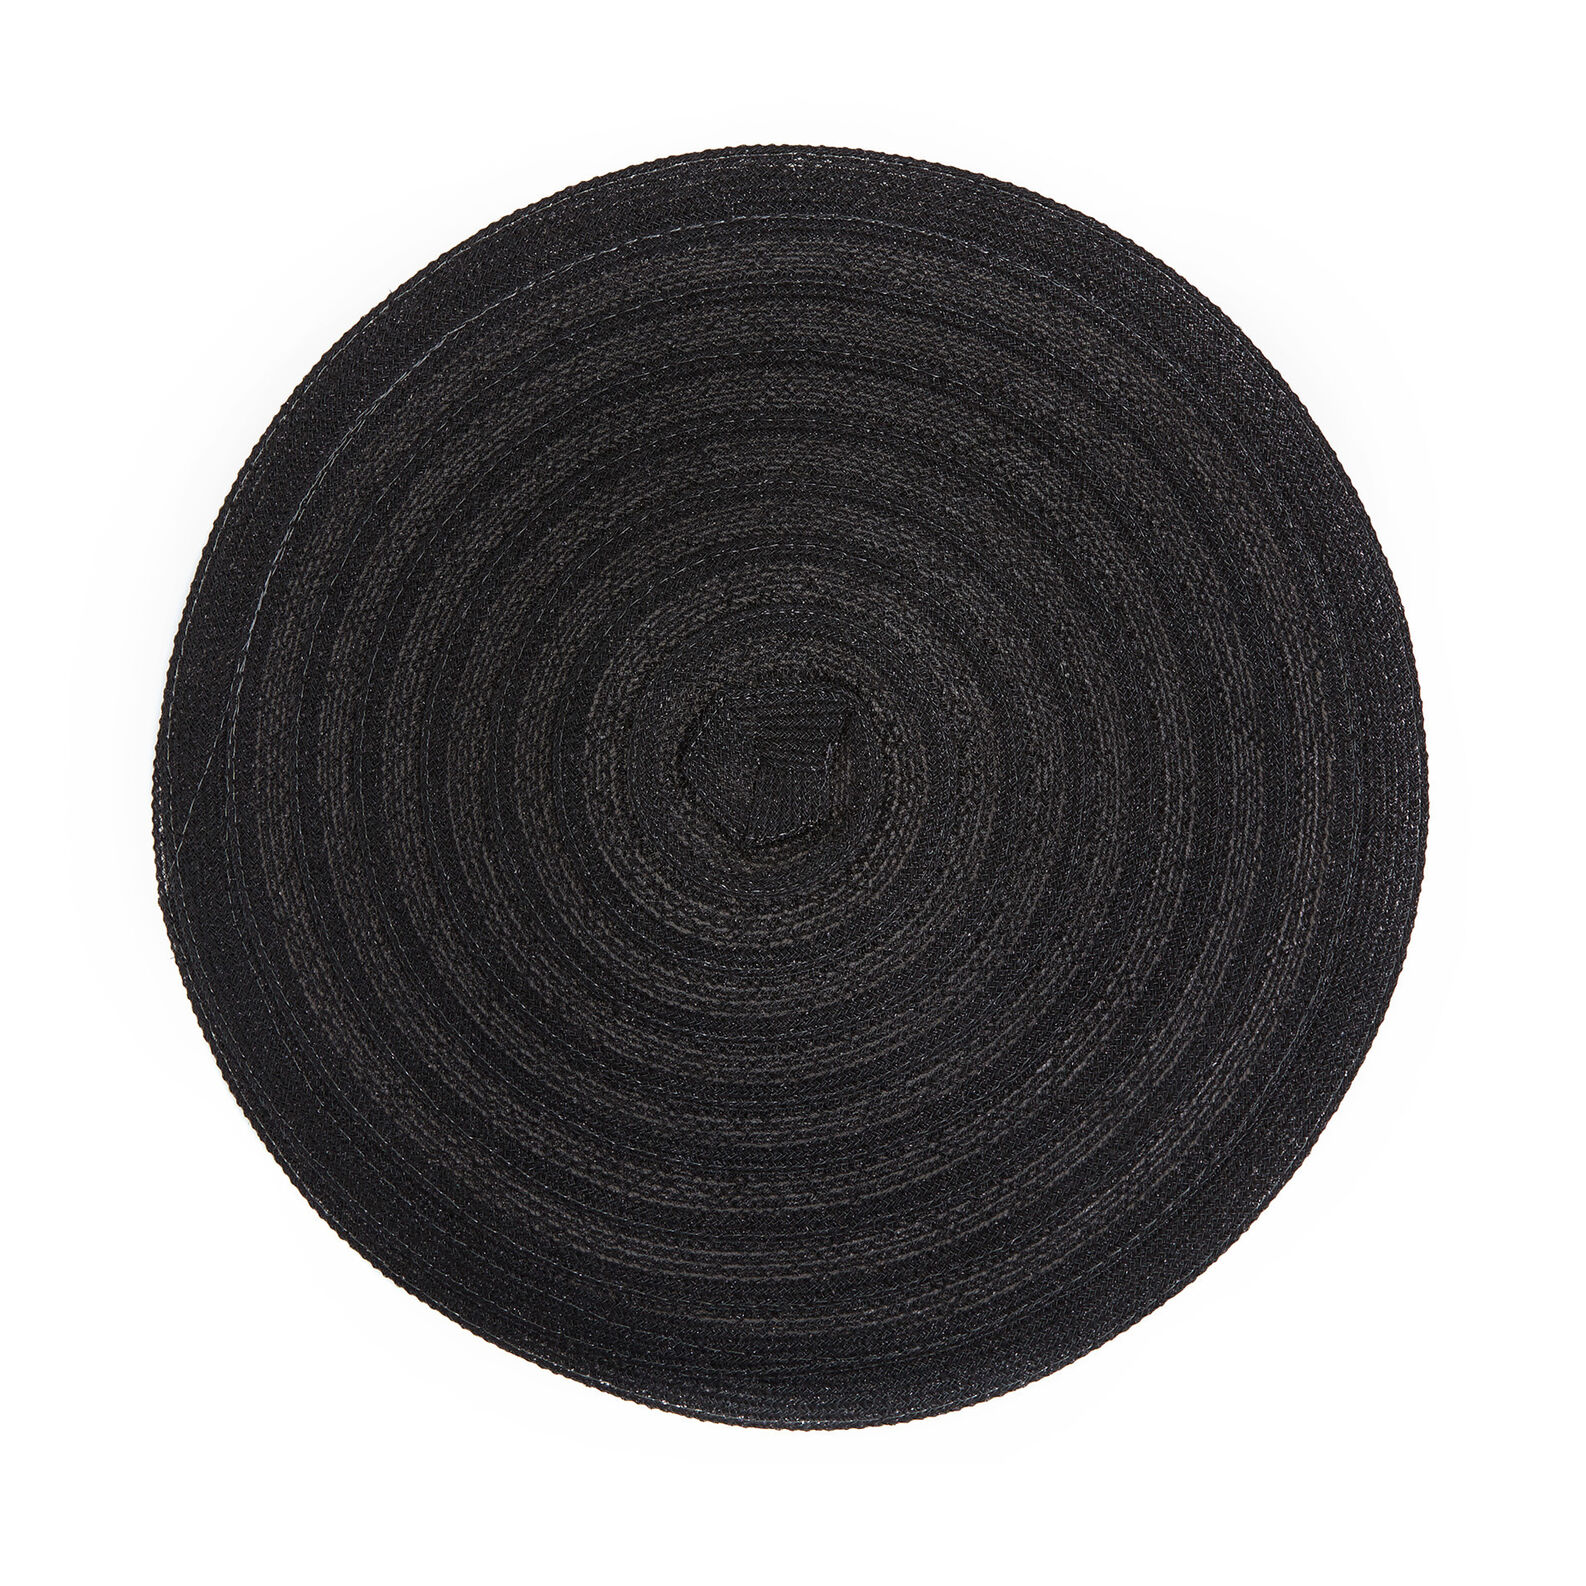 Table mat in woven plastic